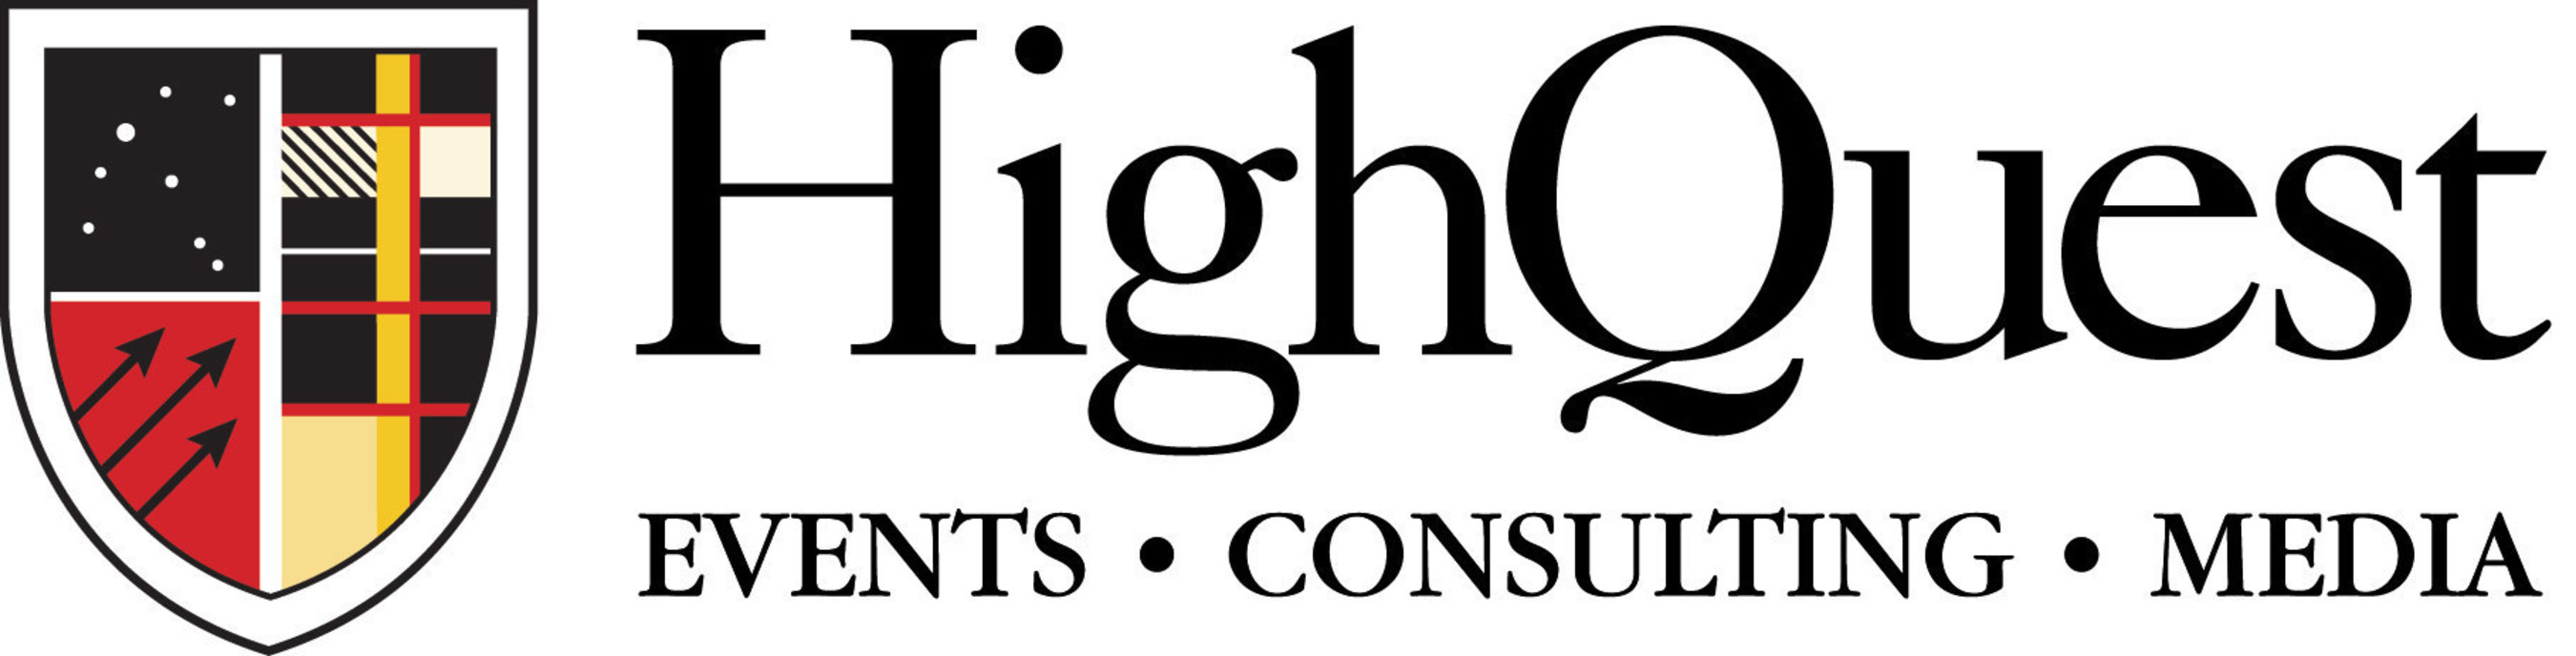 HighQuest Group will bring the co-located Oilseed & Grain Trade Summit and Organic & Non-GMO Forum to Minneapolis this fall.